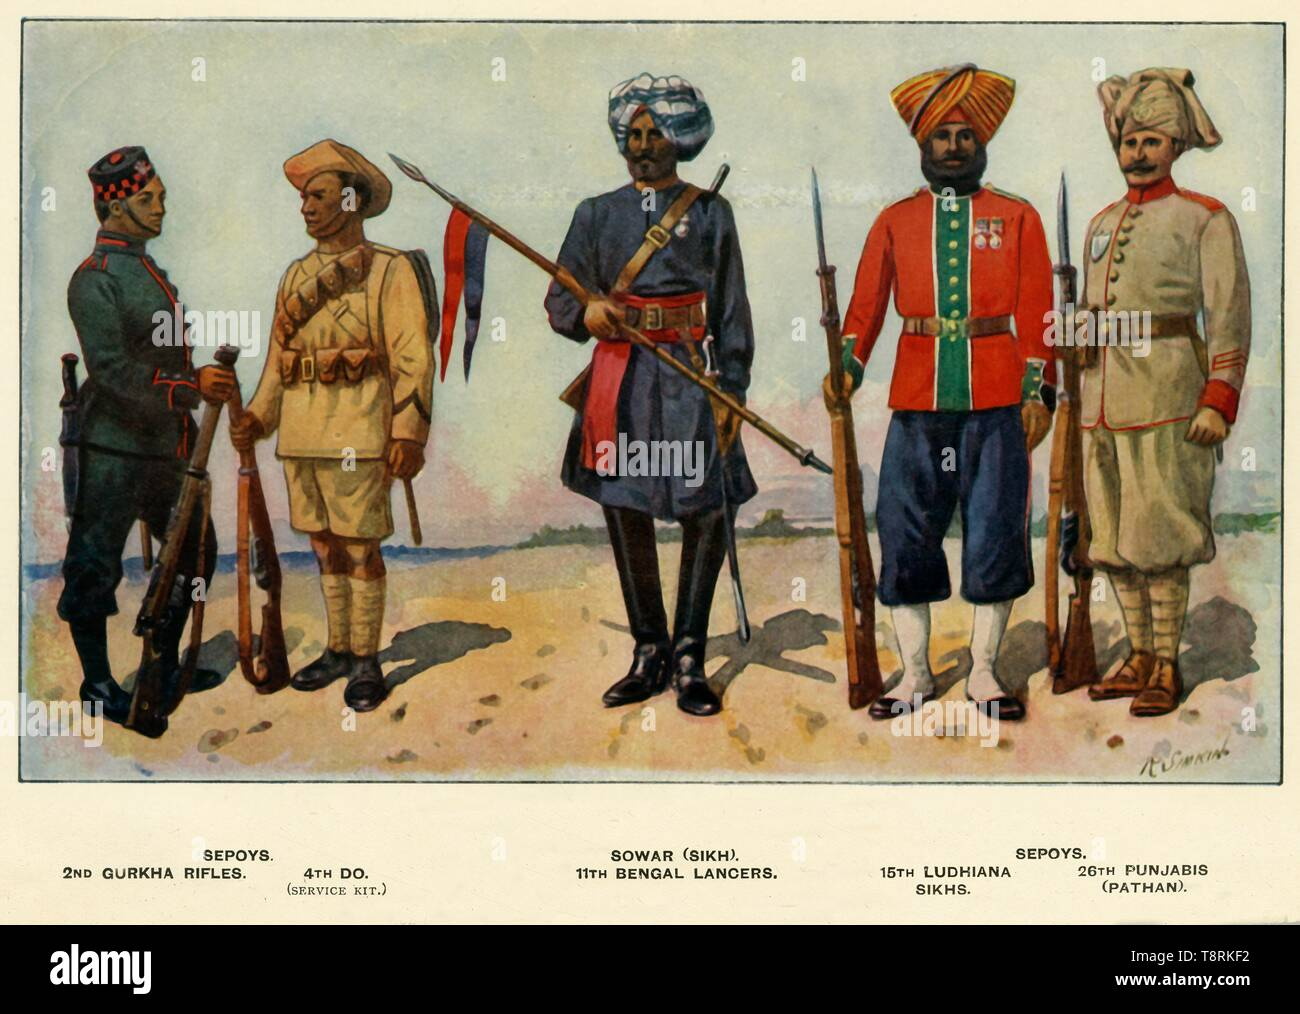 """'Types of the Indian Army', 1919. Soldiers serving during the First World War, 1914-1919: Sepoys - 2nd Gurkha Rifles, 4th DO (service kit); Sowar (Sikh), 11th Bengal Lancers; Sepoys - 15th Ludhiana Sikhs; 26th Punjabis (Pathan). From """"The History of the Great European War: its causes and effects"""", Vol. III, by W. Stanley Macbean Knight. [Caxton Pulishing Company, Limited, London, 1919] - Stock Image"""